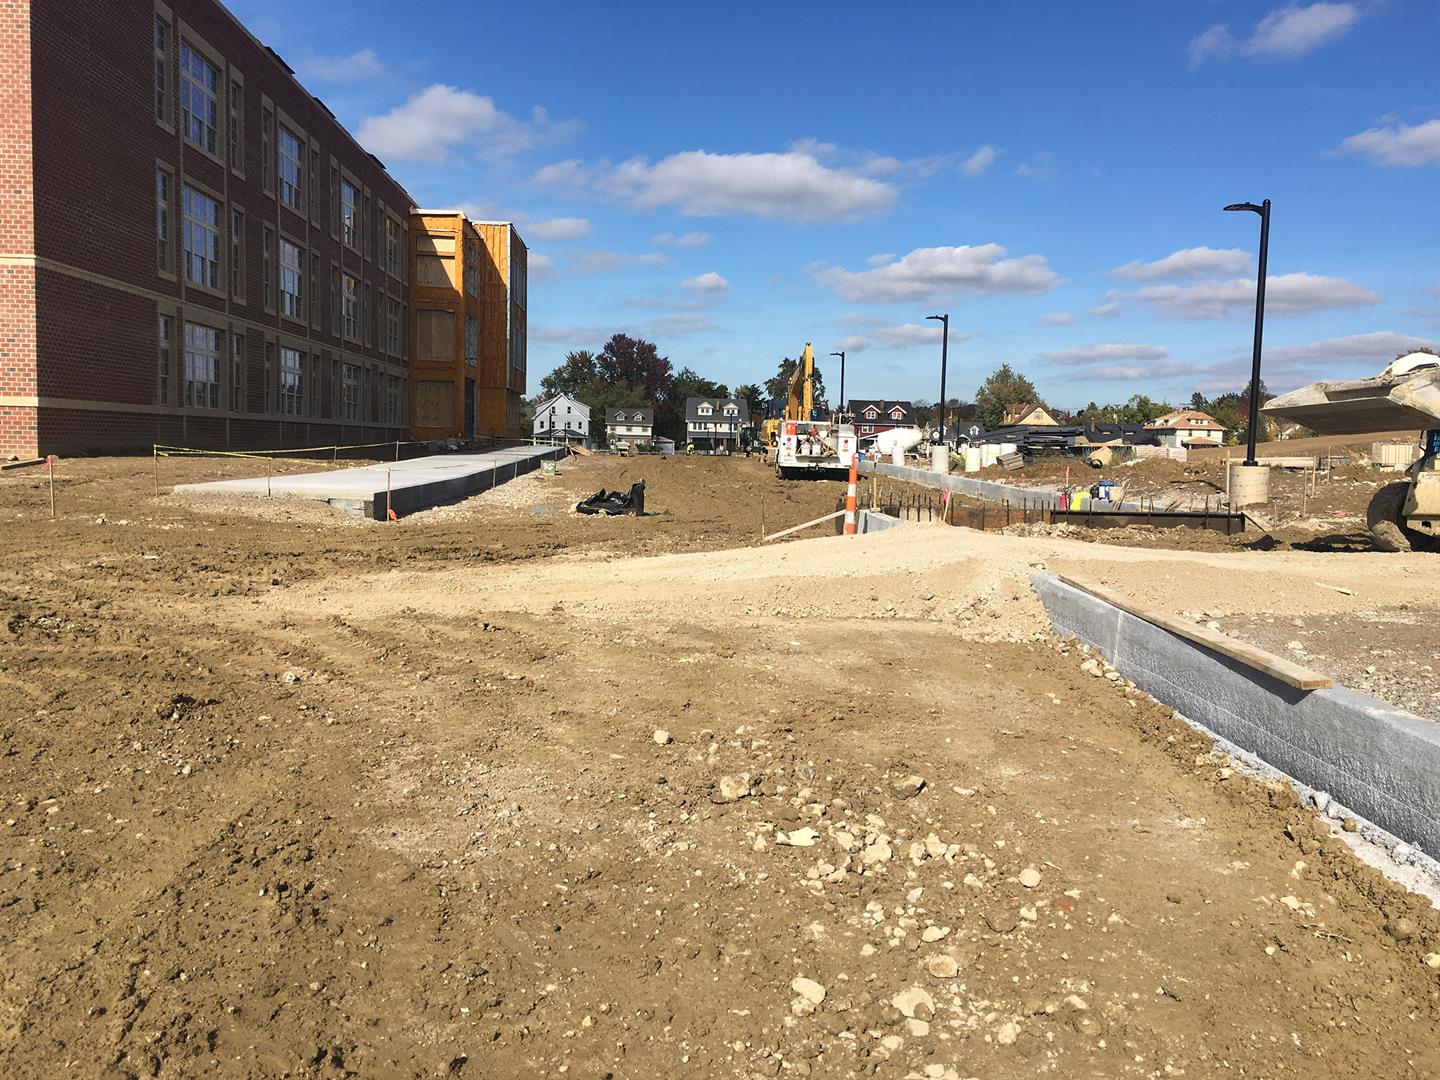 Sidewalks and curbs at East drive